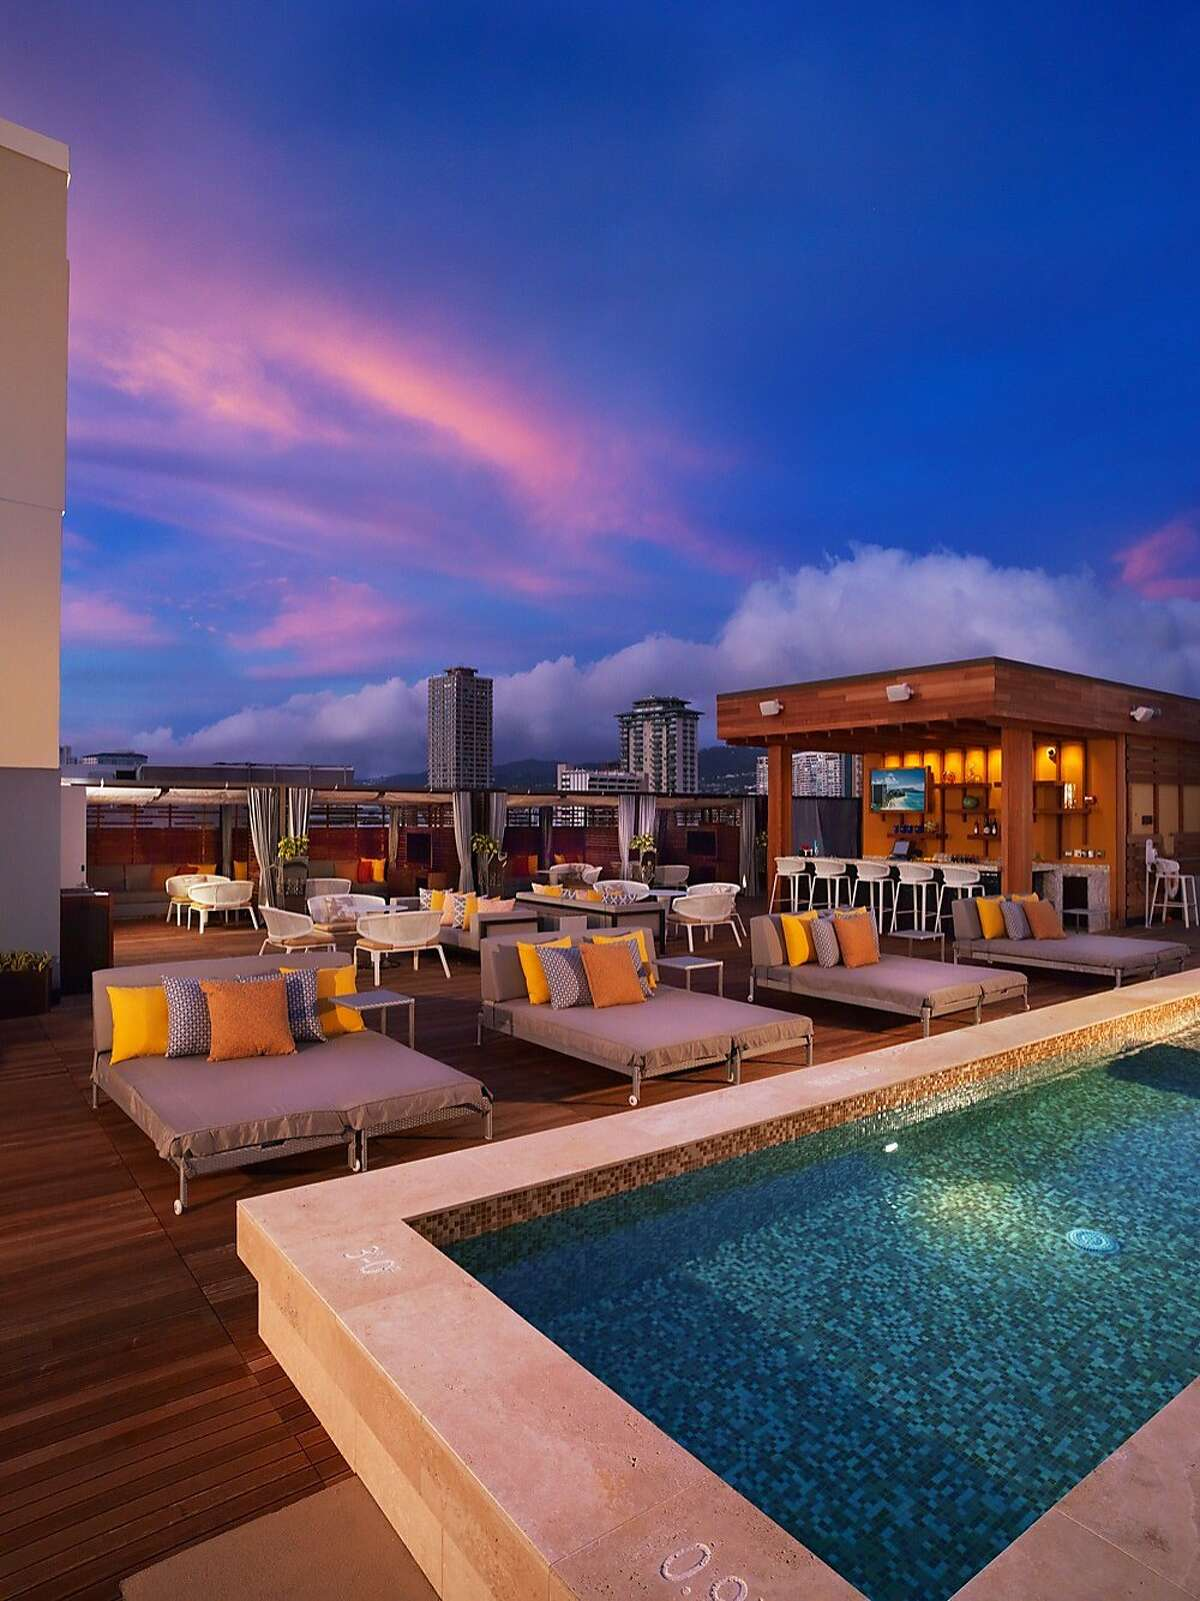 The new Hokulani Waikiki by Hilton Grand Vacations, a renovation and timeshare conversion of the former Ohana Islander Waikiki, claims to have Waikiki's only rooftop pool bar, as well as 143 one-bedroom suites.